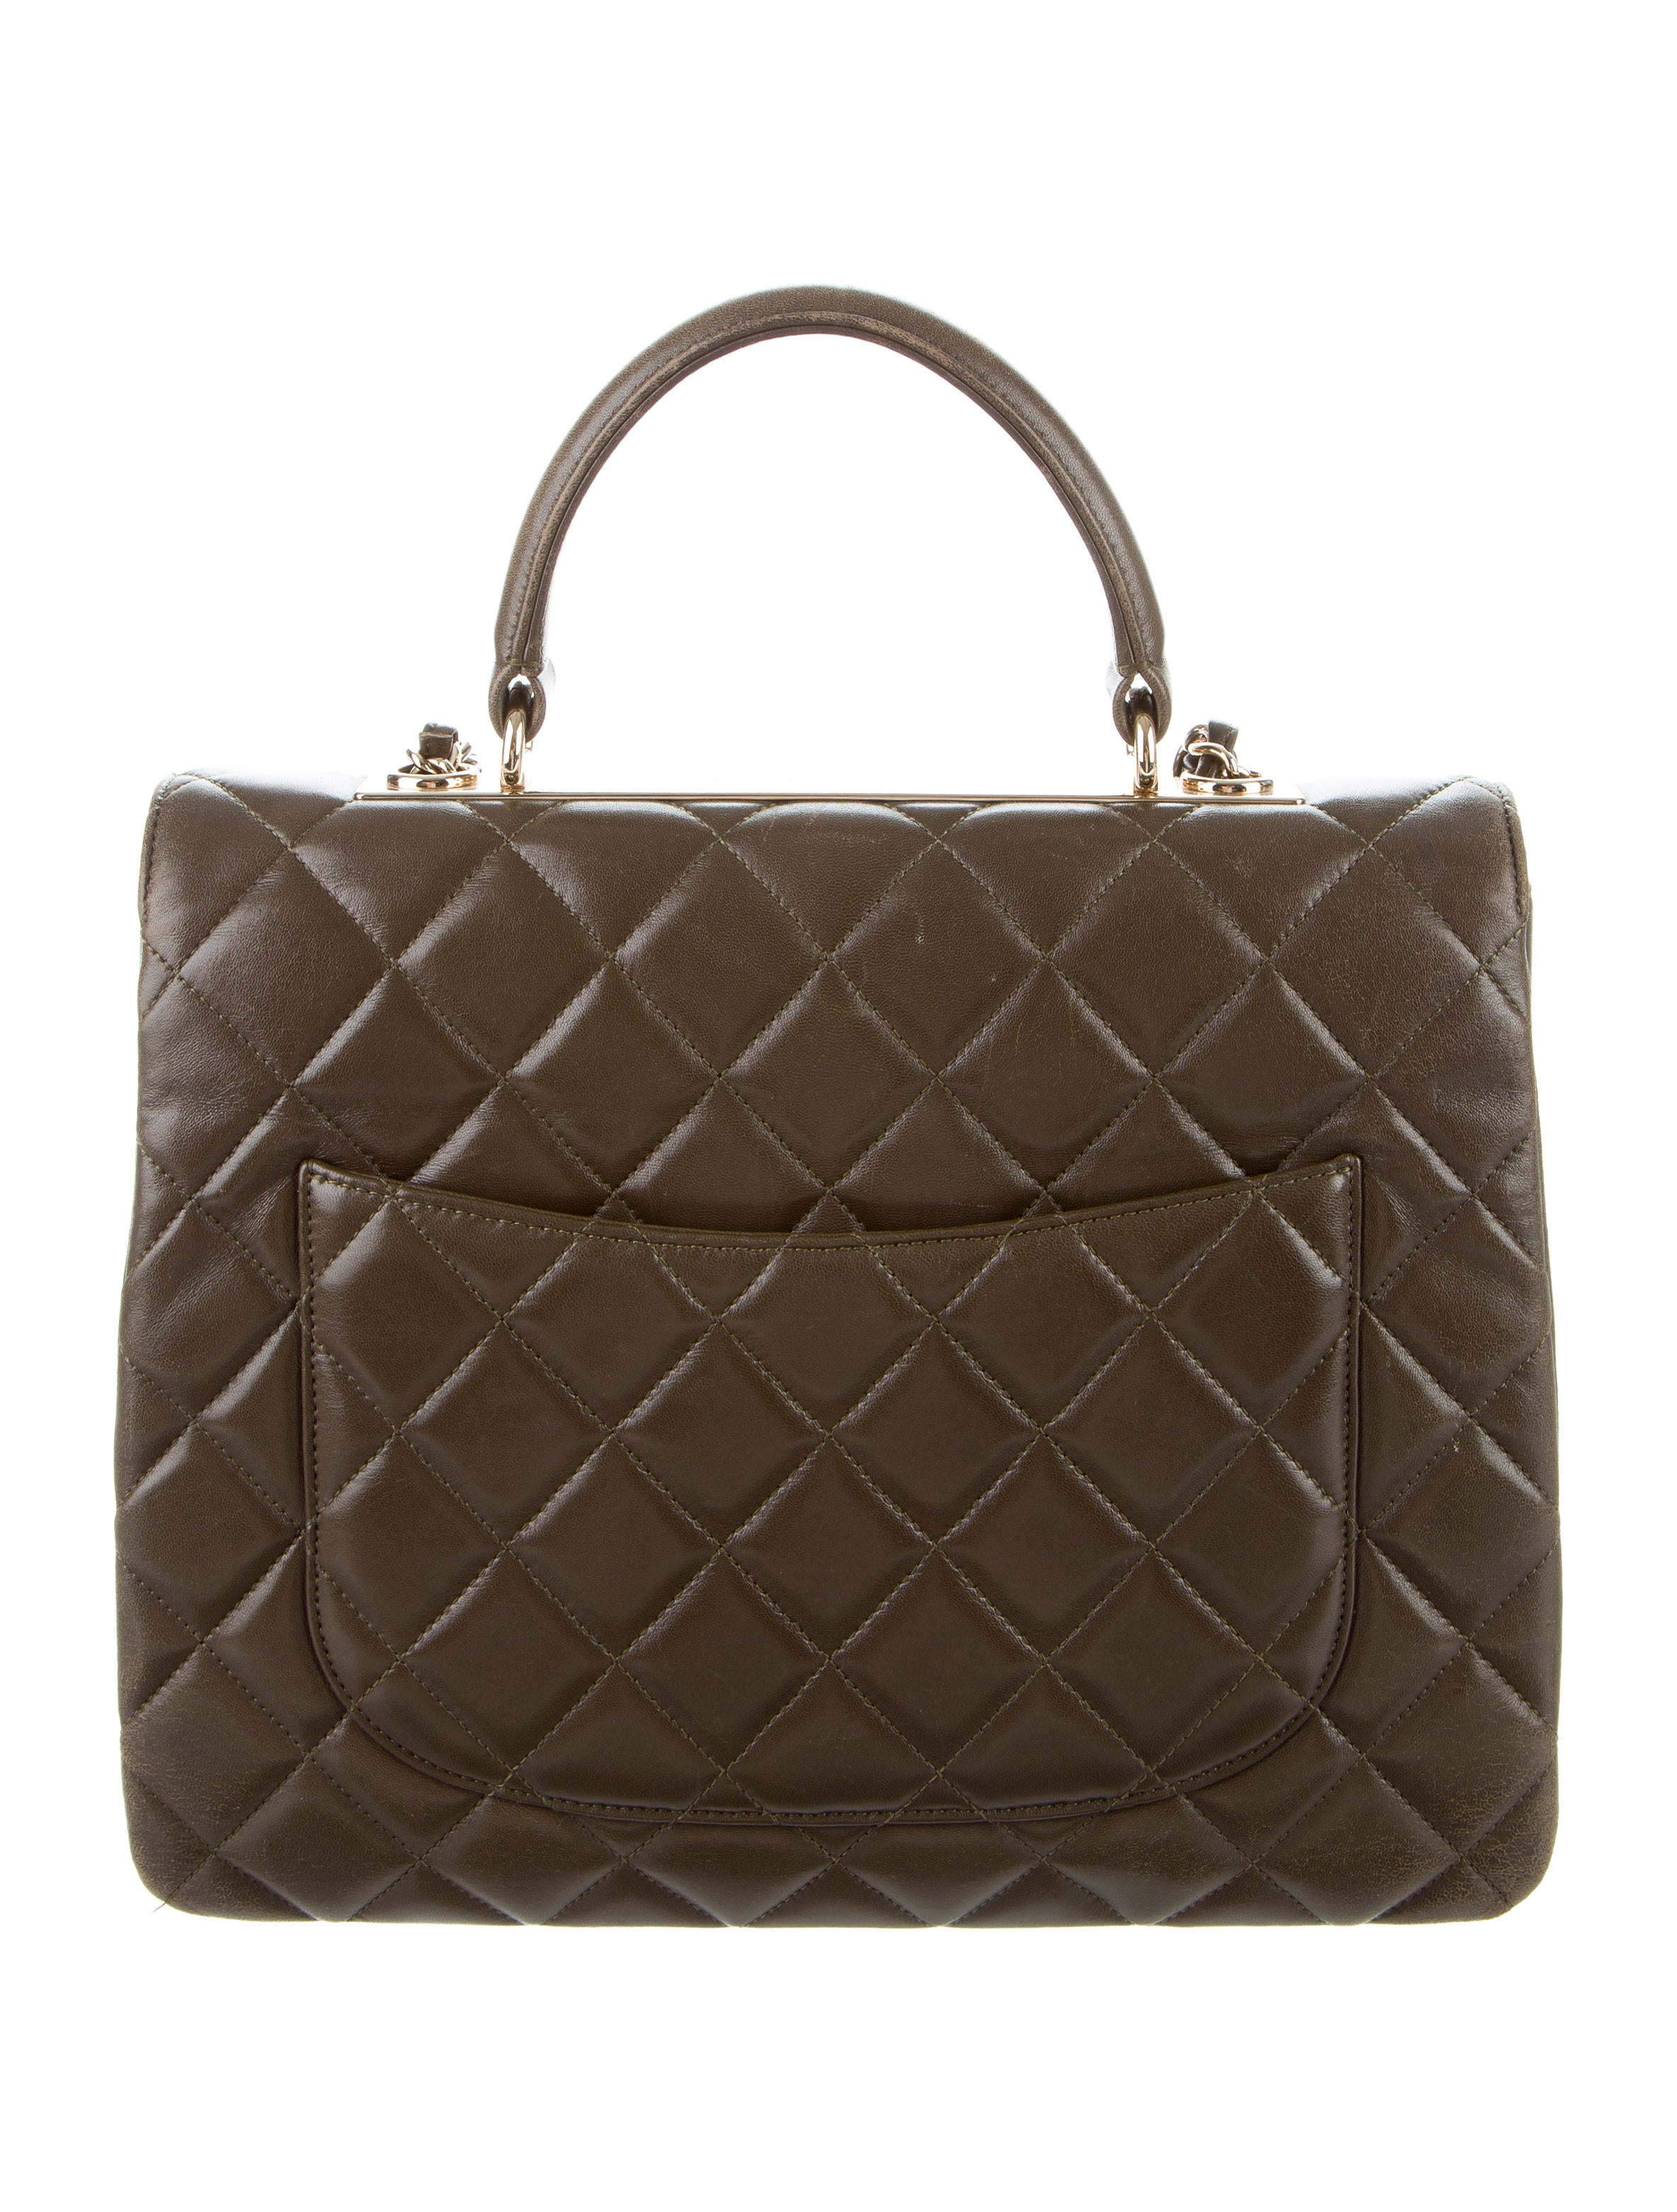 b9f9df8acee0 Chanel Trendy Cc Bag 2017 | Stanford Center for Opportunity Policy ...